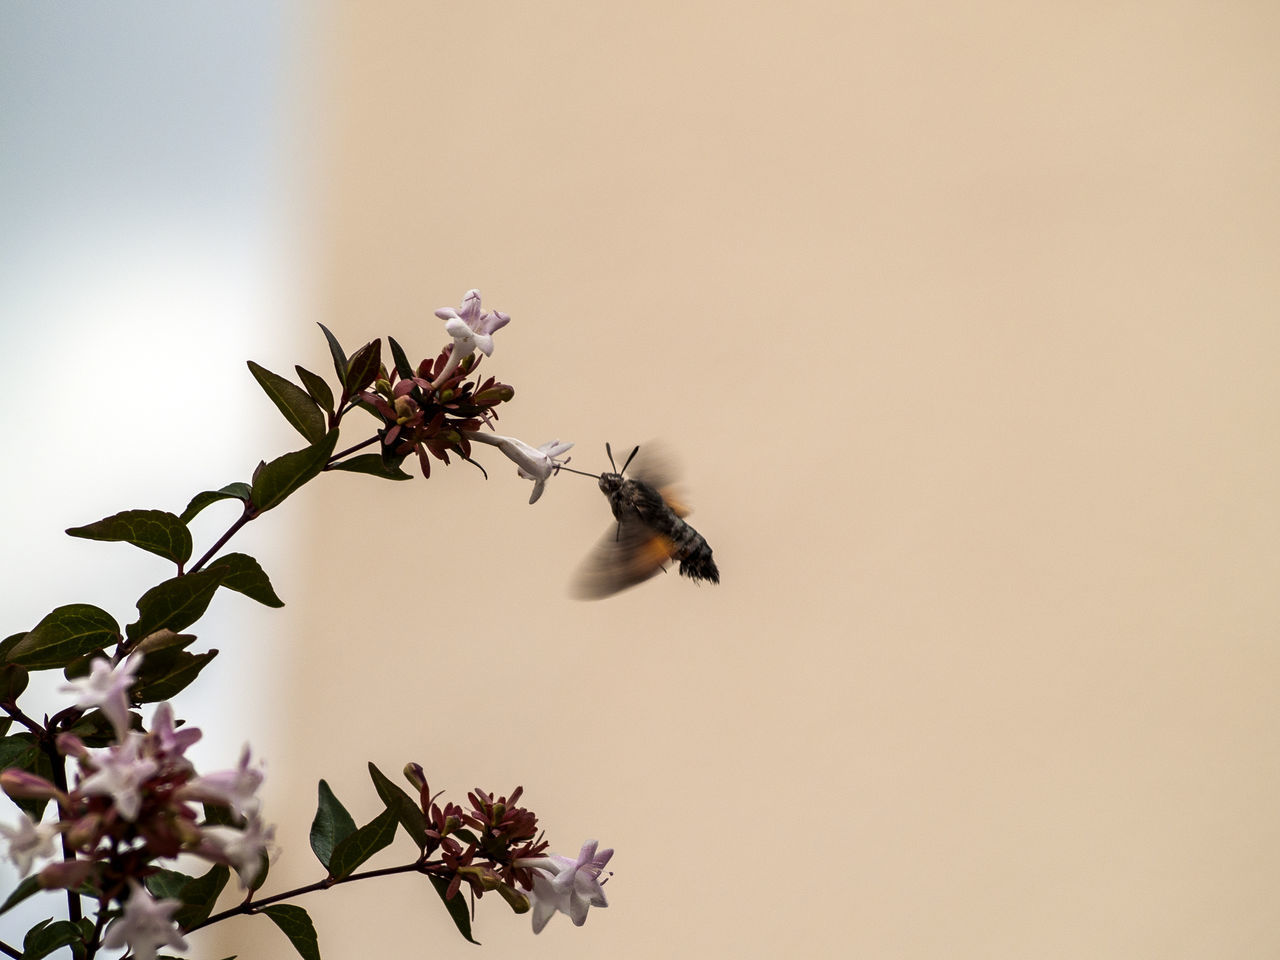 Animal Themes Animals In The Wild Beauty In Nature Close-up Day Flower Fragility Freshness Growth Hummingbird Hummingbird Hawk-moth Hummingbird Hawkmoth Insect Macroglossum Macroglossum Stellatarum Nature Nature Nectar No People One Animal Outdoors Pollen Pollination Pollinators Wildlife